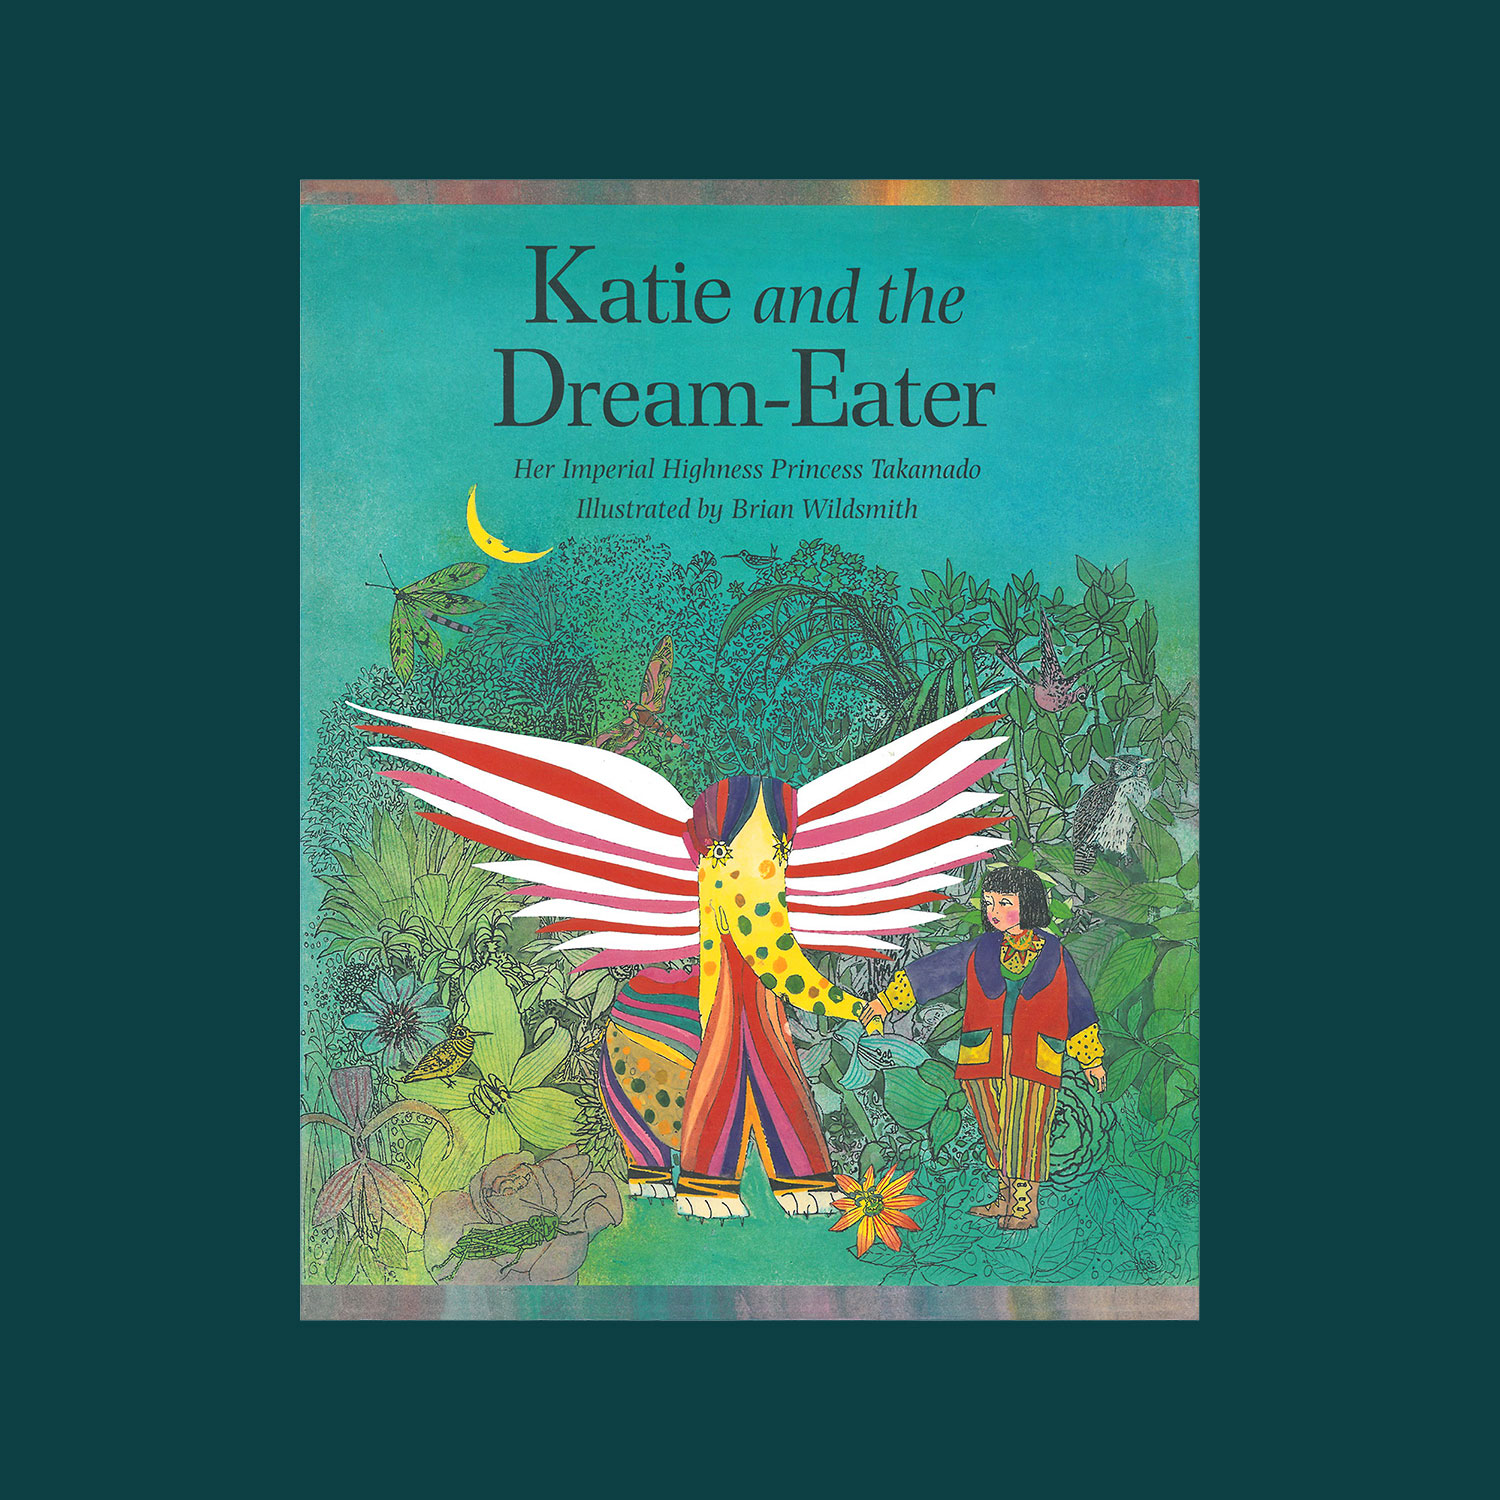 """KATIE AND THE DREAM-EATER - Written by Her Imperial Highness Princess Takamodo, illustrated by Brian Wildsmith. 1996""""Far away, beyond the rainbow and above the clouds, there is a magic land where unicorns and dragons live. Here too live the baku, shy creatures that eat up bad dreams. This is the story of a little dream-eater who went out to help a girl called Katie. He fought off all her terrible dream monsters and ate up her bad dreams until he was caught on the wrong side of her dream. What was Katie to do with him?""""""""…Wildsmiths watercolours and paintings, ripe with Asian motives and saturated in an array of vibrant colours, depict a fanciful landscape that youngsters will love to explore…""""Publishers Weekly"""